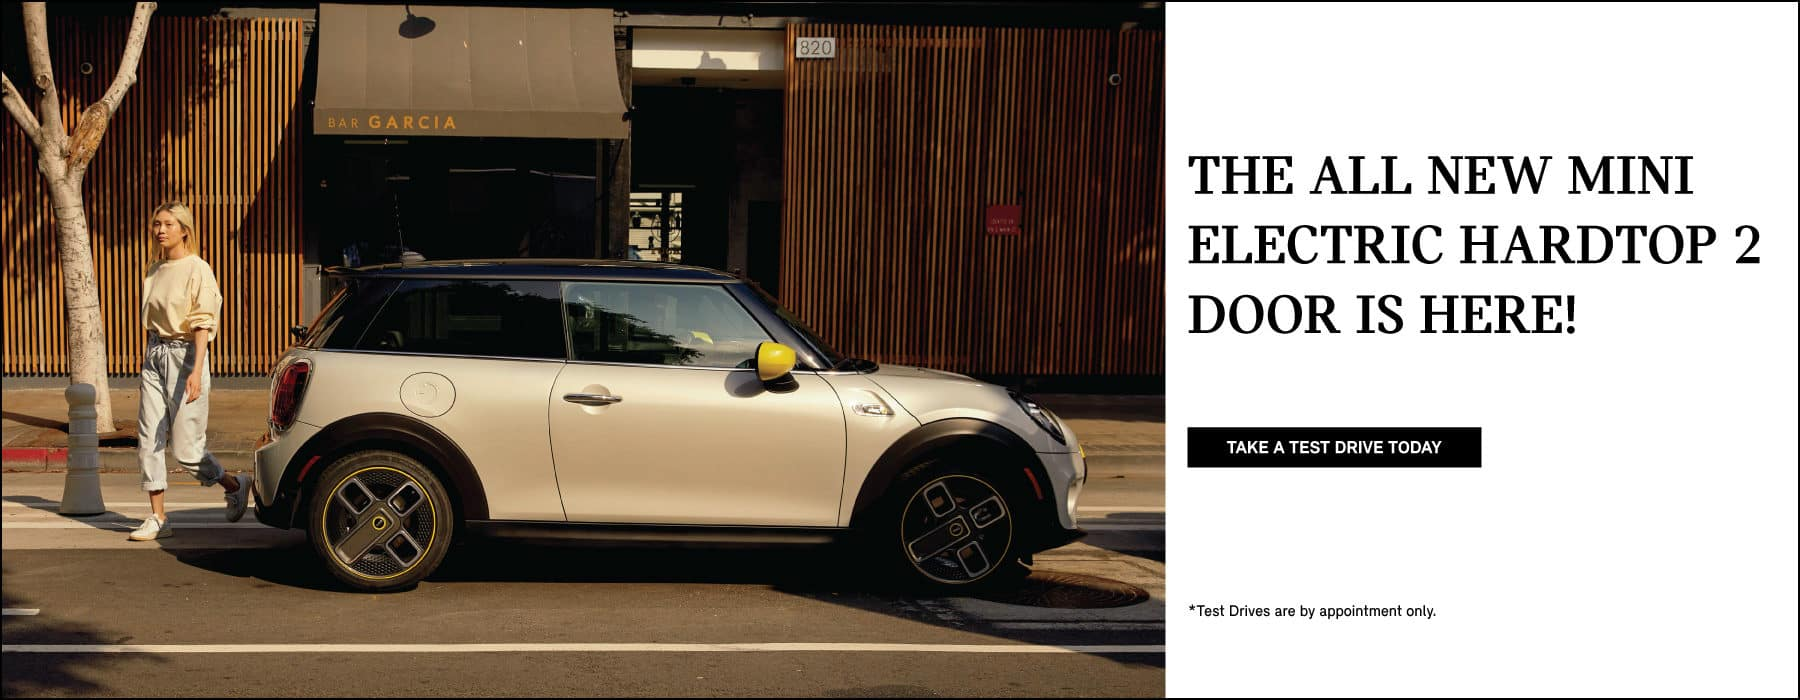 THE ALL NEW MINI ELECTRIC HARDTOP 2 DOOR IS HERE! TEST DRIVE TODAY BUTTON